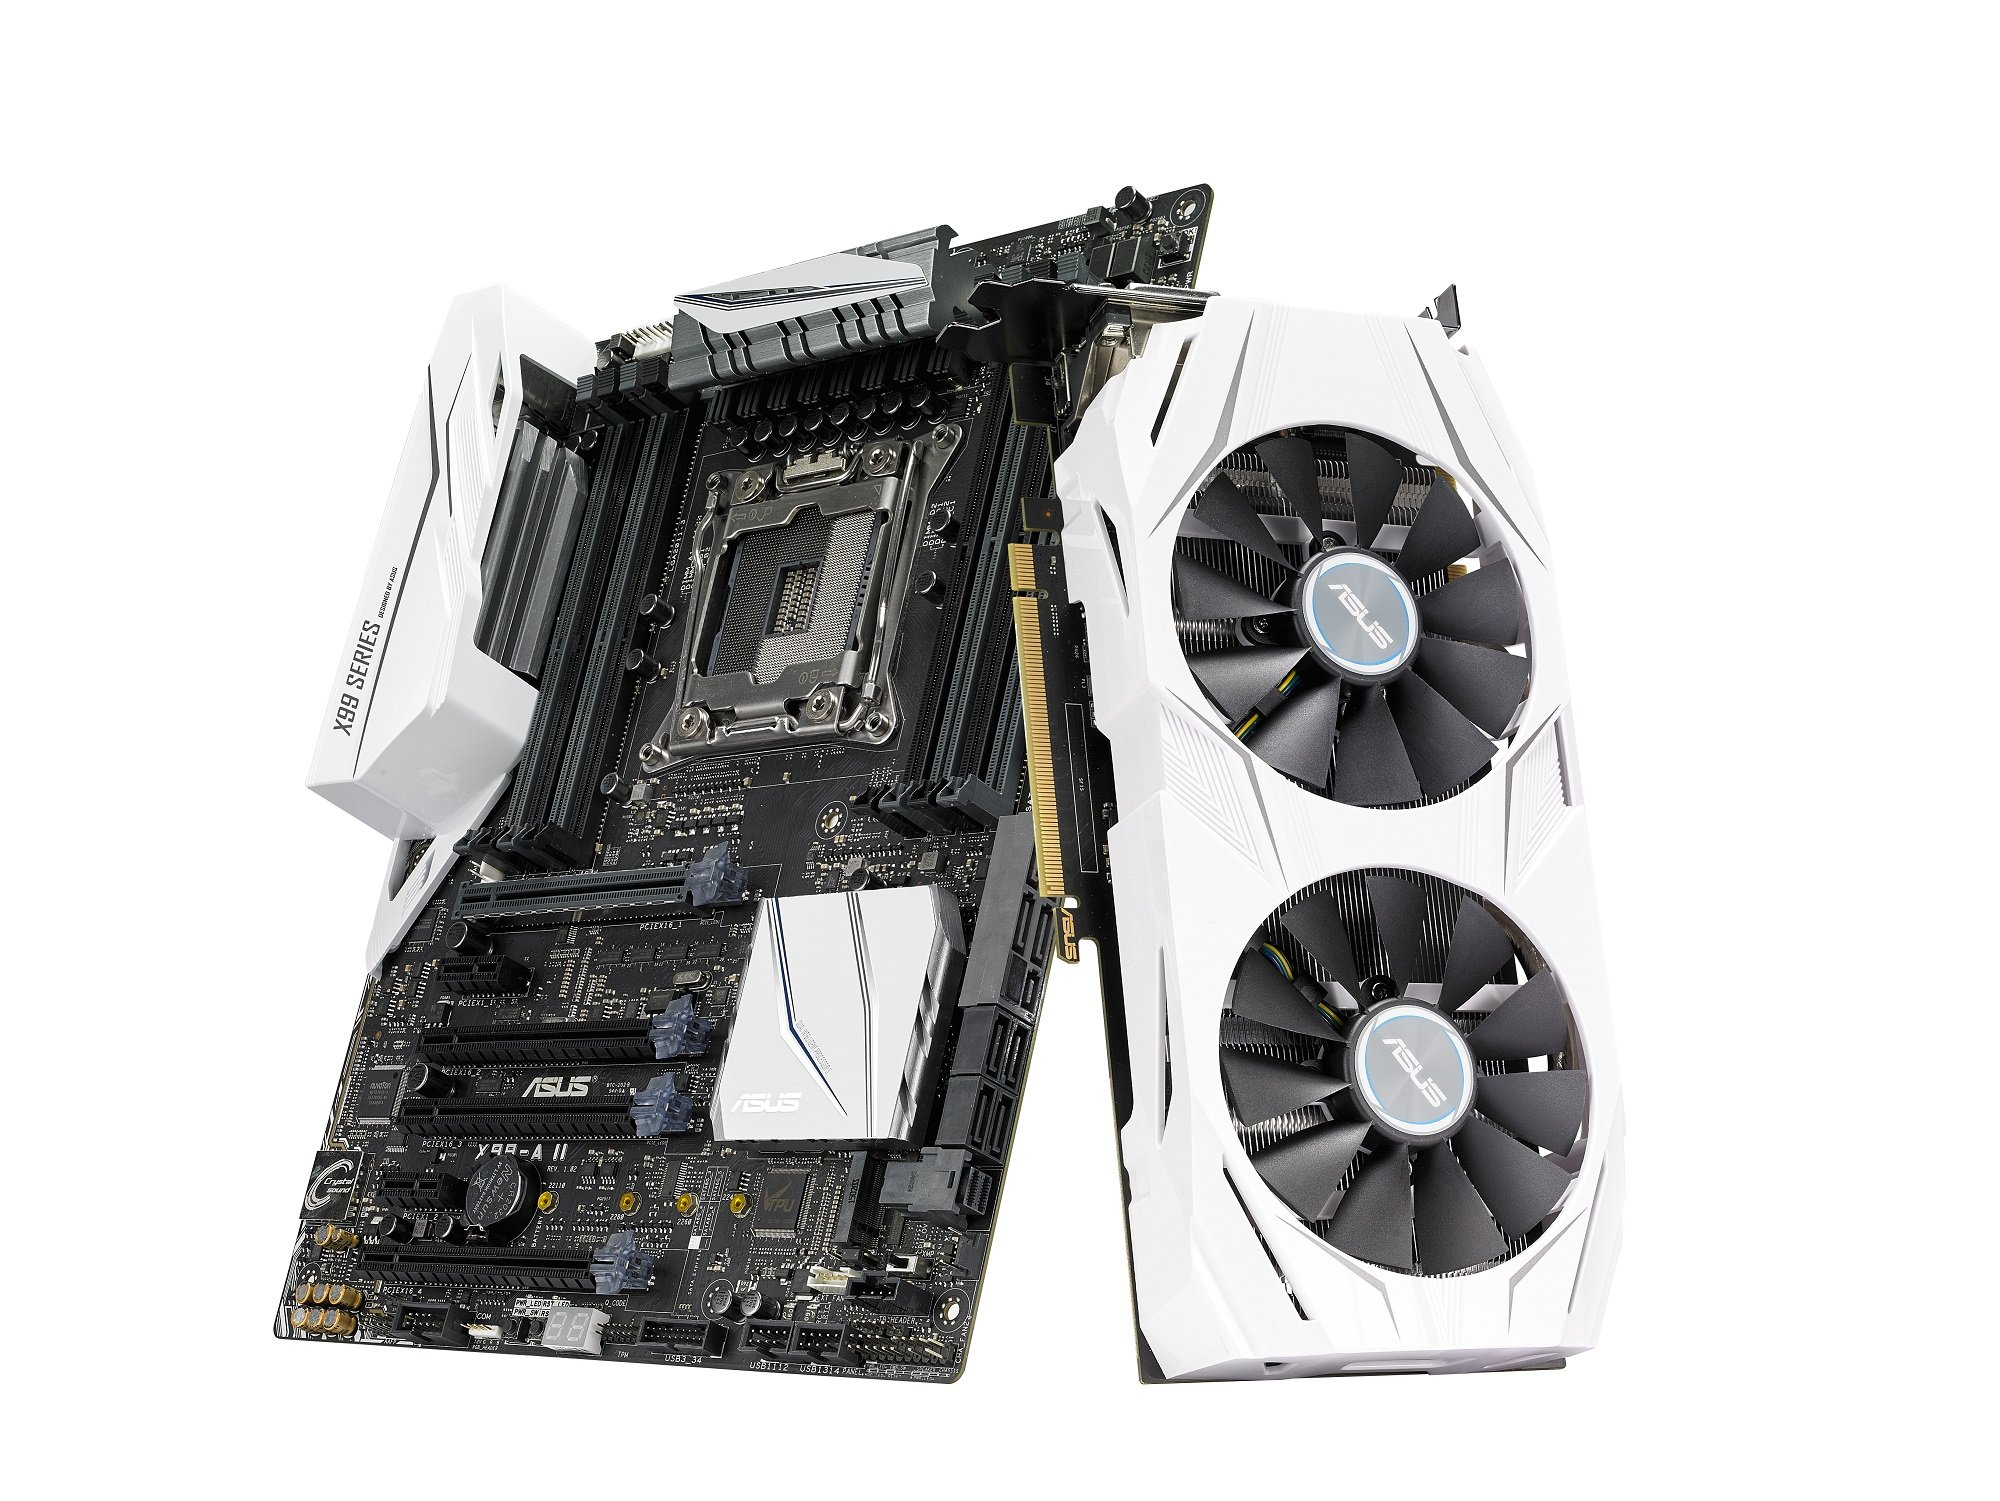 ASUS GeForce GTX 1060 6GB Dual-fan OC Edition VR Ready Dual HDMI DP 1.4 Gaming Graphics Card (DUAL-GTX1060-O6G) by Asus (Image #7)